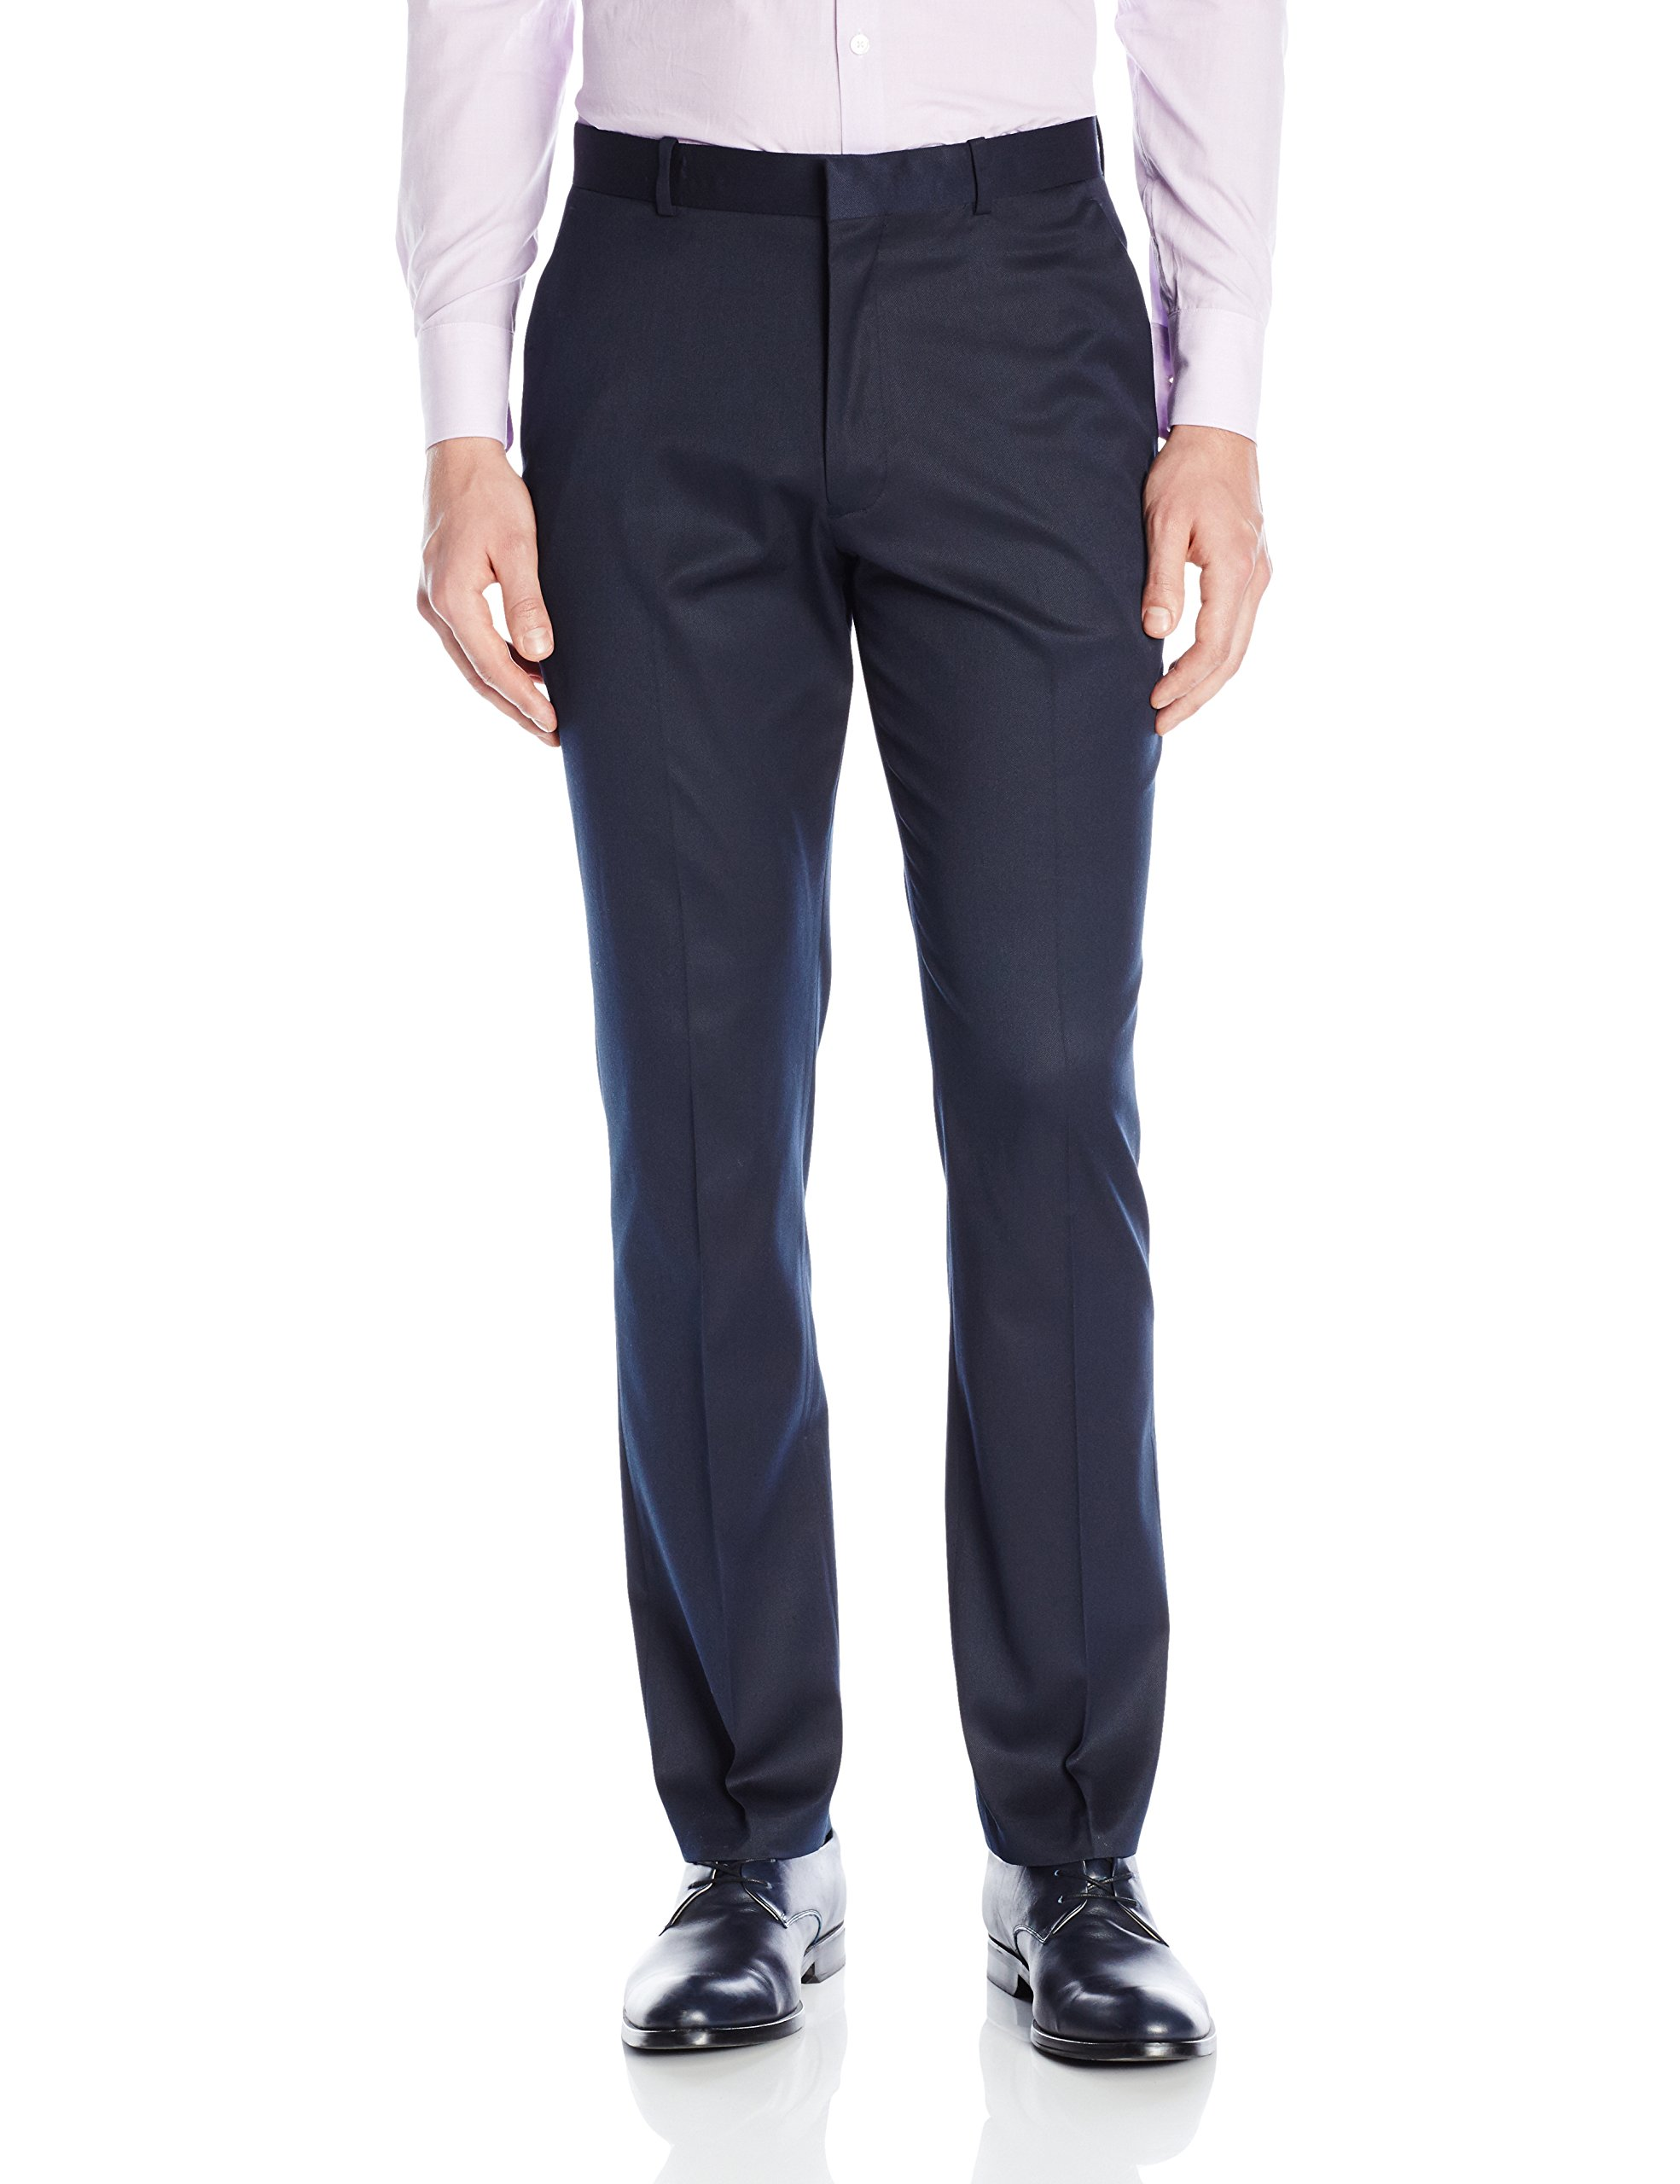 Perry Ellis Men's Solid Slim Fit Pant, Navy, 33x32